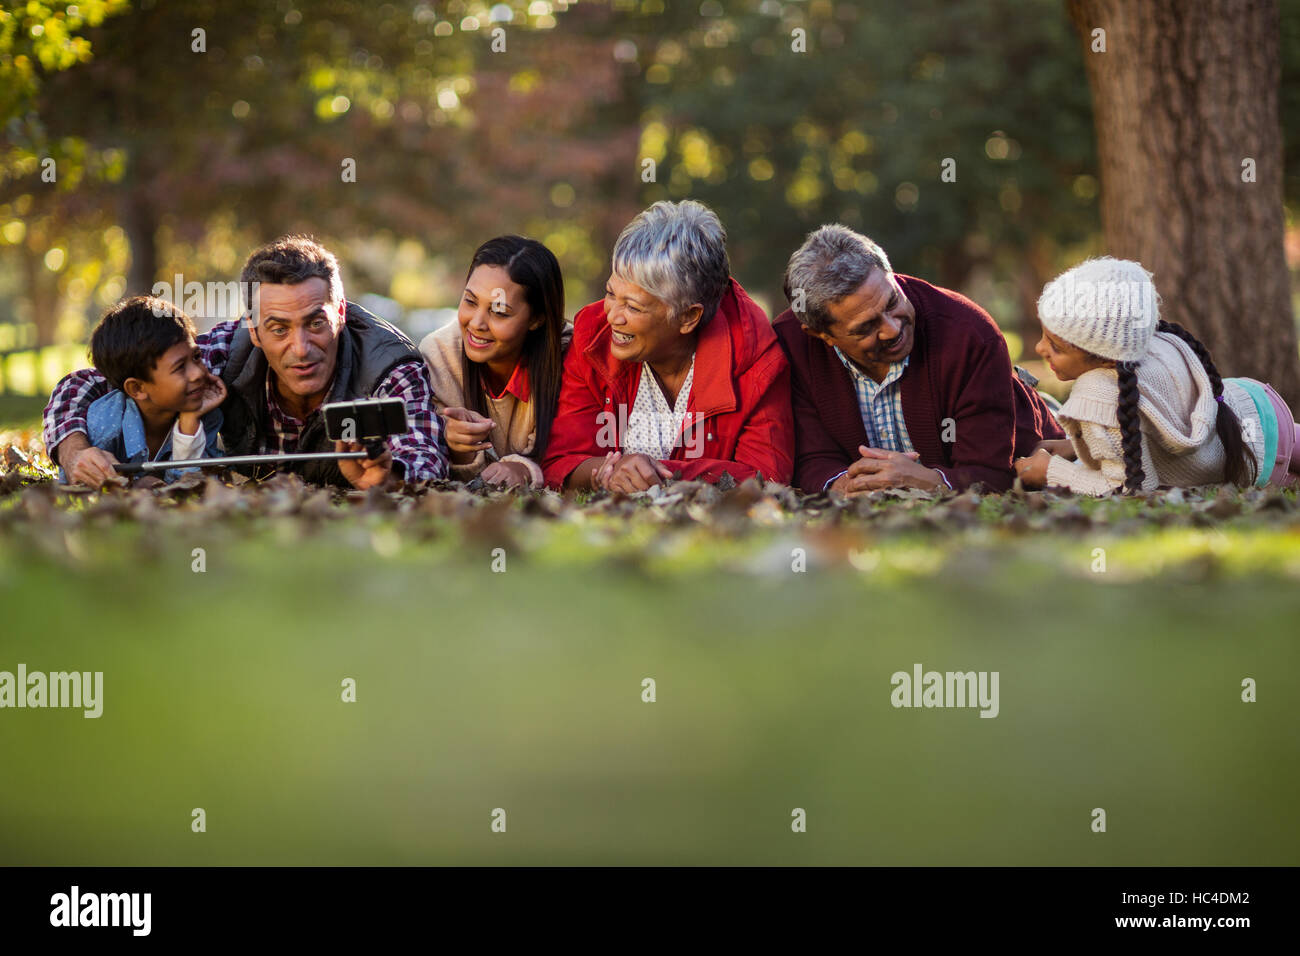 Man with family taking selfie - Stock Image